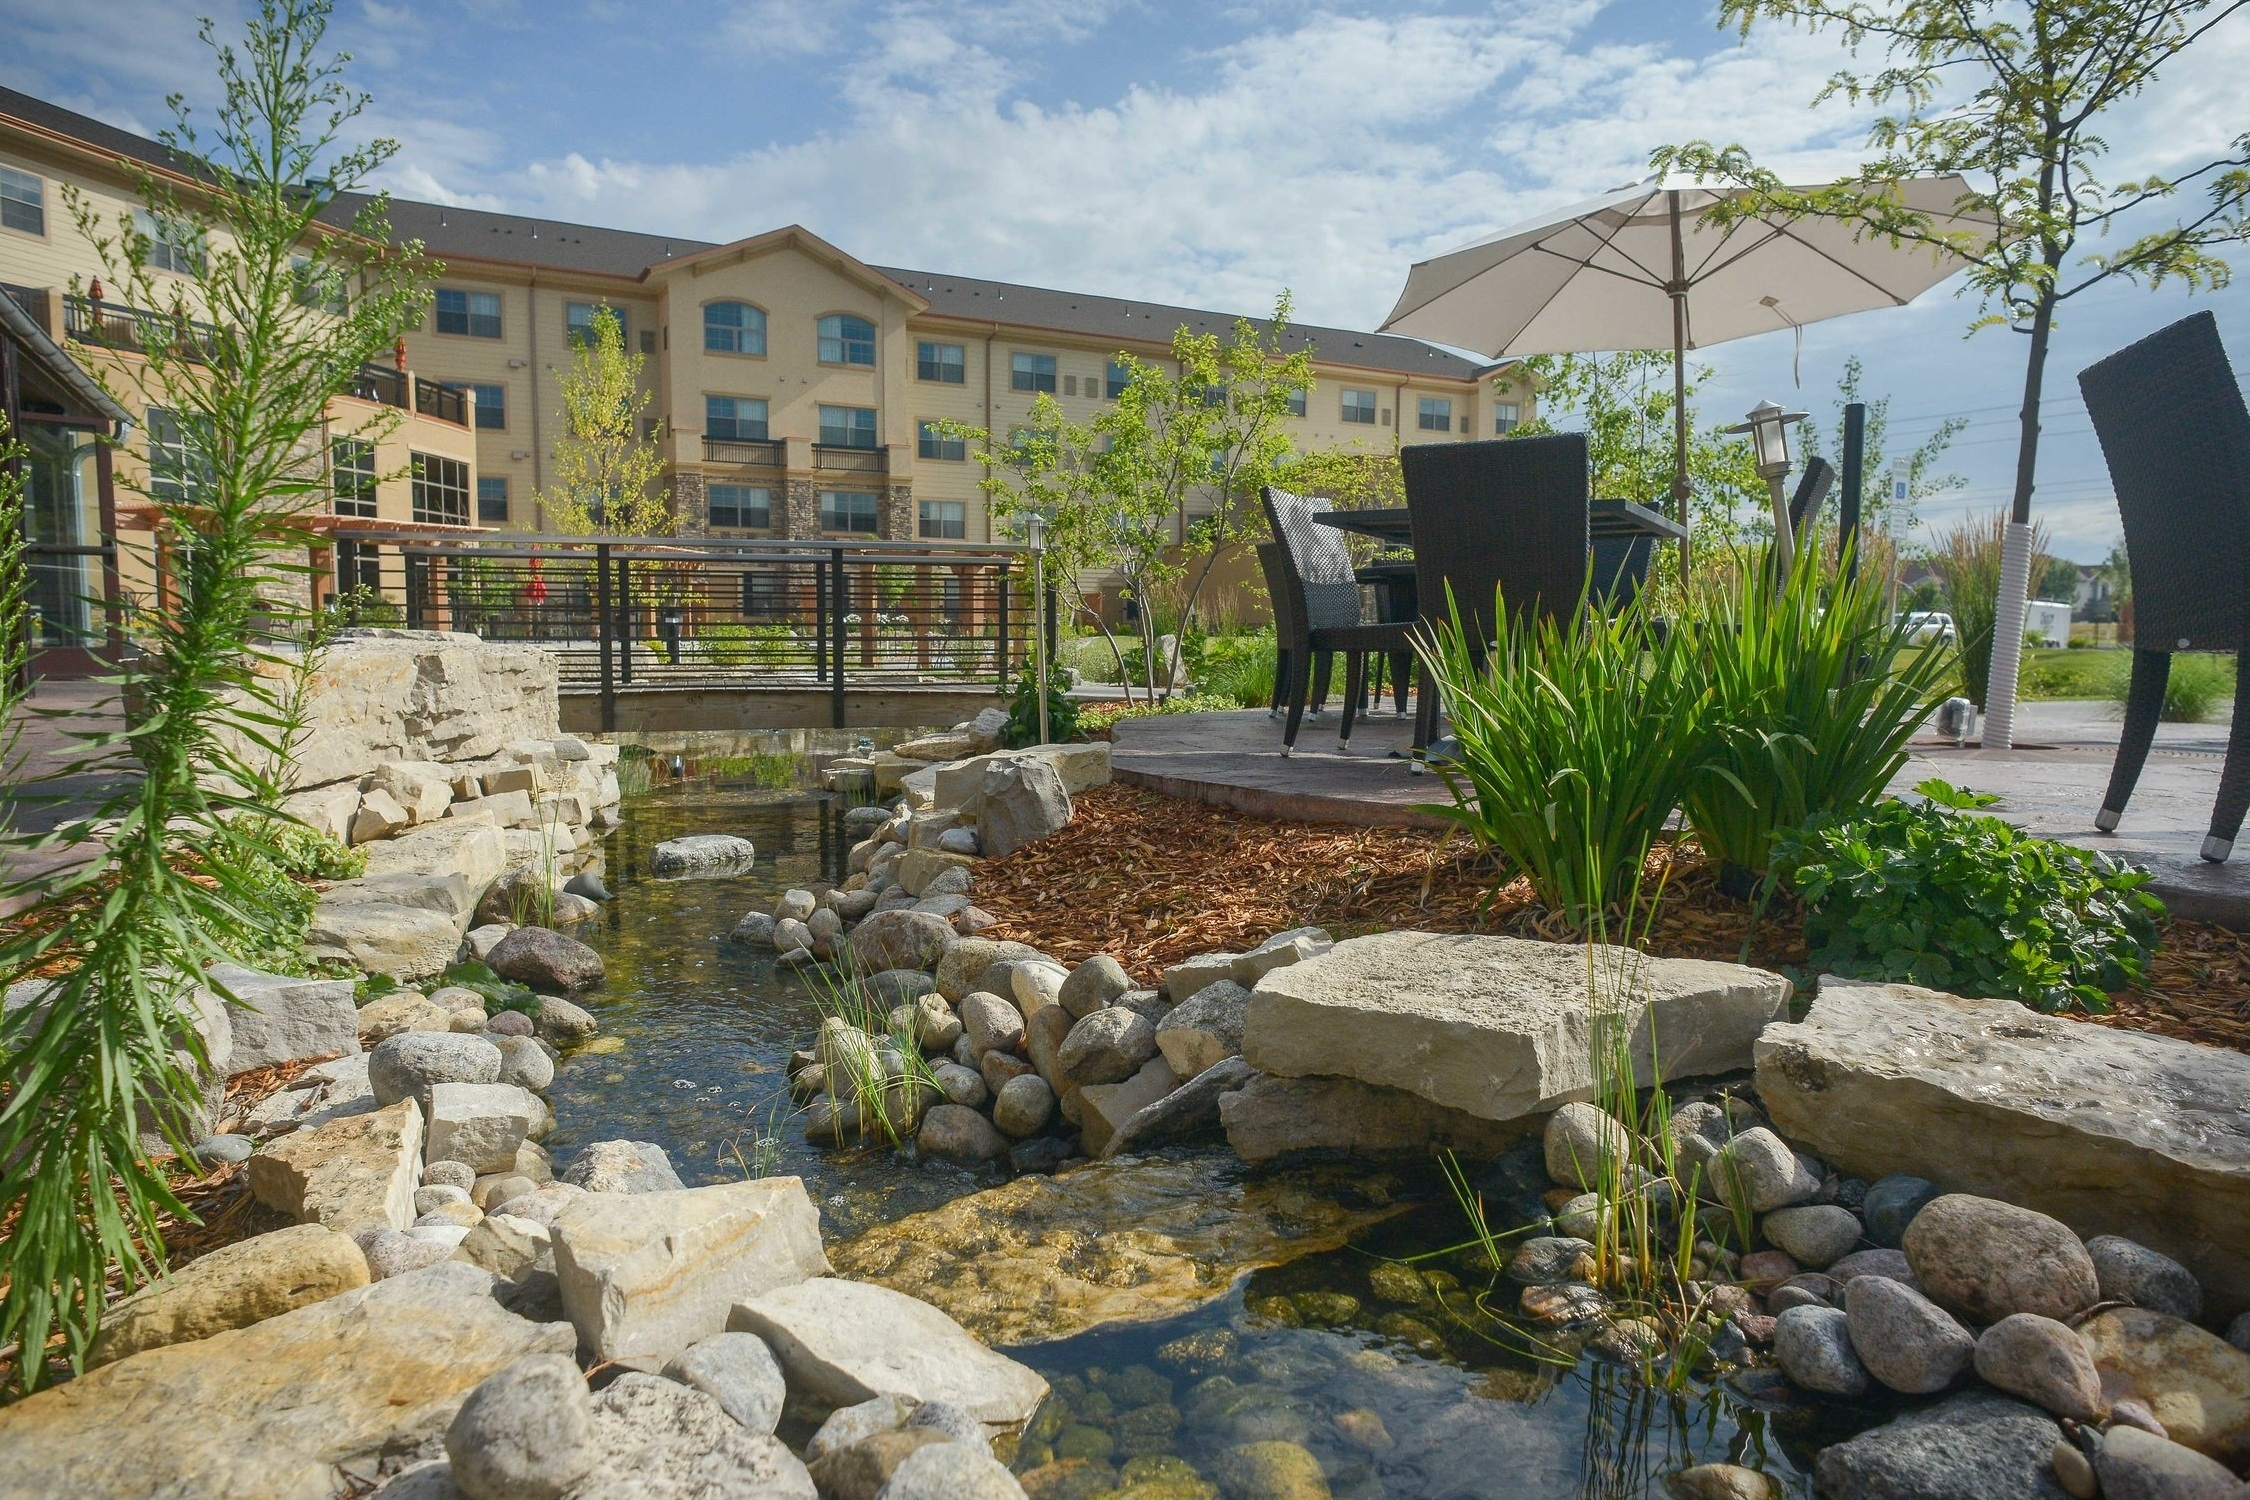 Land Elements designed the back patio seating area and landscape at Porter Creek Hardwood Grill in Fargo.